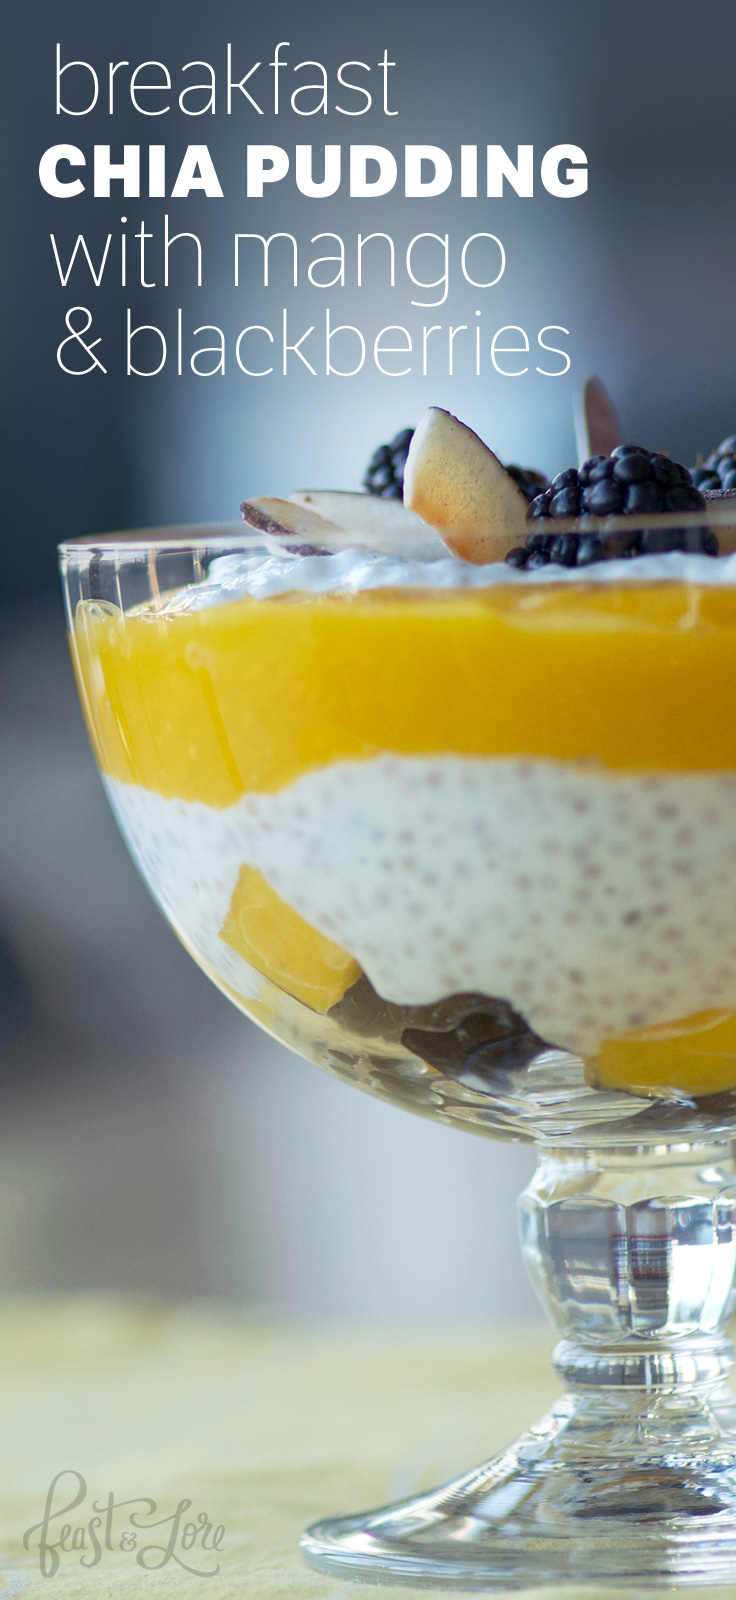 Chia Pudding with Mango Sauce and Blackberries